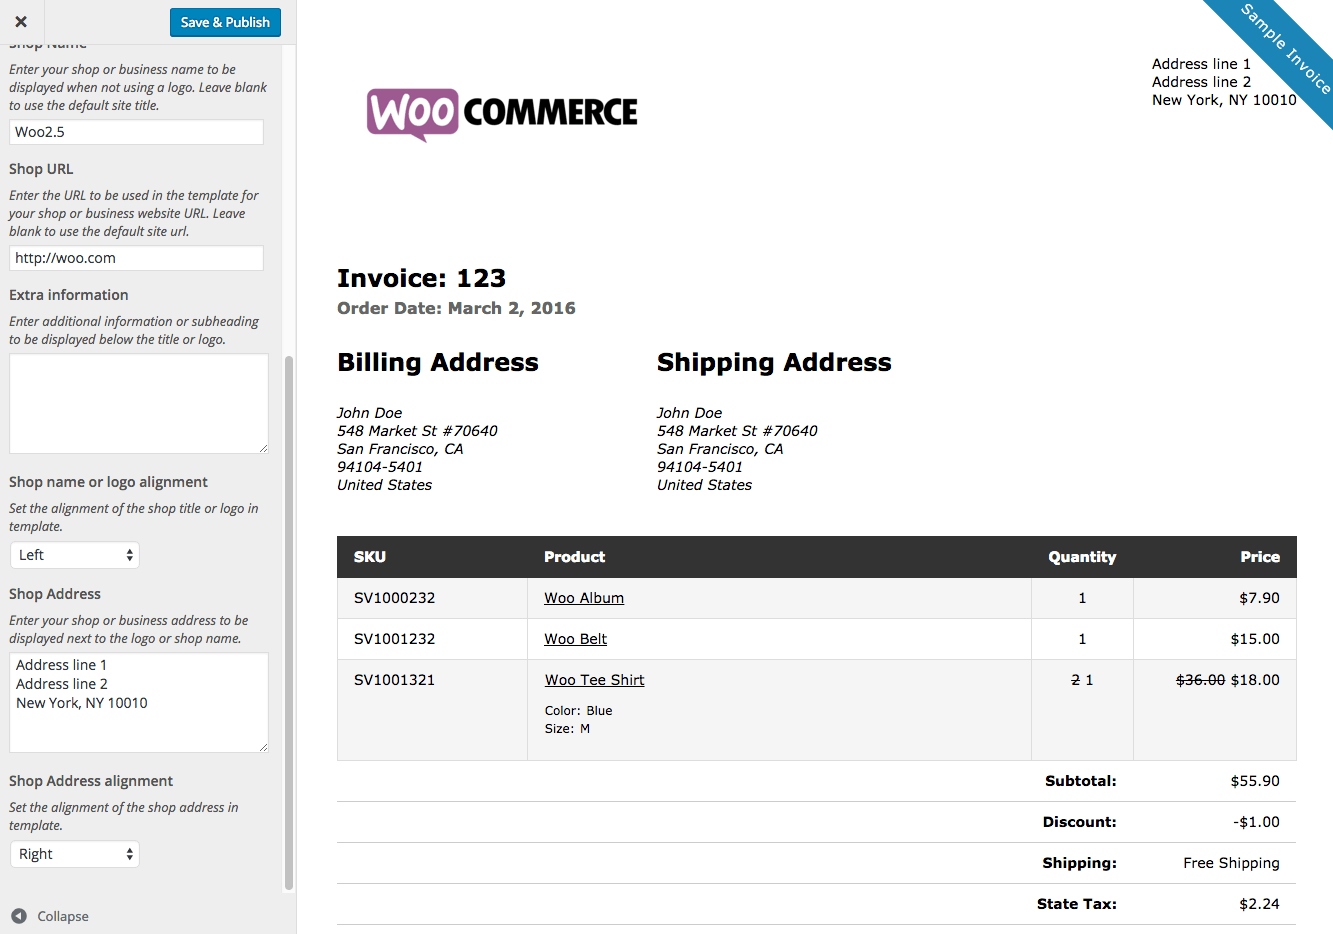 Occupyhistoryus  Prepossessing Print Invoices Amp Packing Lists  Woocommerce With Heavenly Woocommerce Print Invoices  Packing Lists Customizer With Lovely Example Of Invoice Letter Also Xero Invoice Template In Addition Repair Shop Invoice And Chase Invoicing As Well As Free Invoice Receipt Template Additionally Invoice Template On Word From Woocommercecom With Occupyhistoryus  Heavenly Print Invoices Amp Packing Lists  Woocommerce With Lovely Woocommerce Print Invoices  Packing Lists Customizer And Prepossessing Example Of Invoice Letter Also Xero Invoice Template In Addition Repair Shop Invoice From Woocommercecom